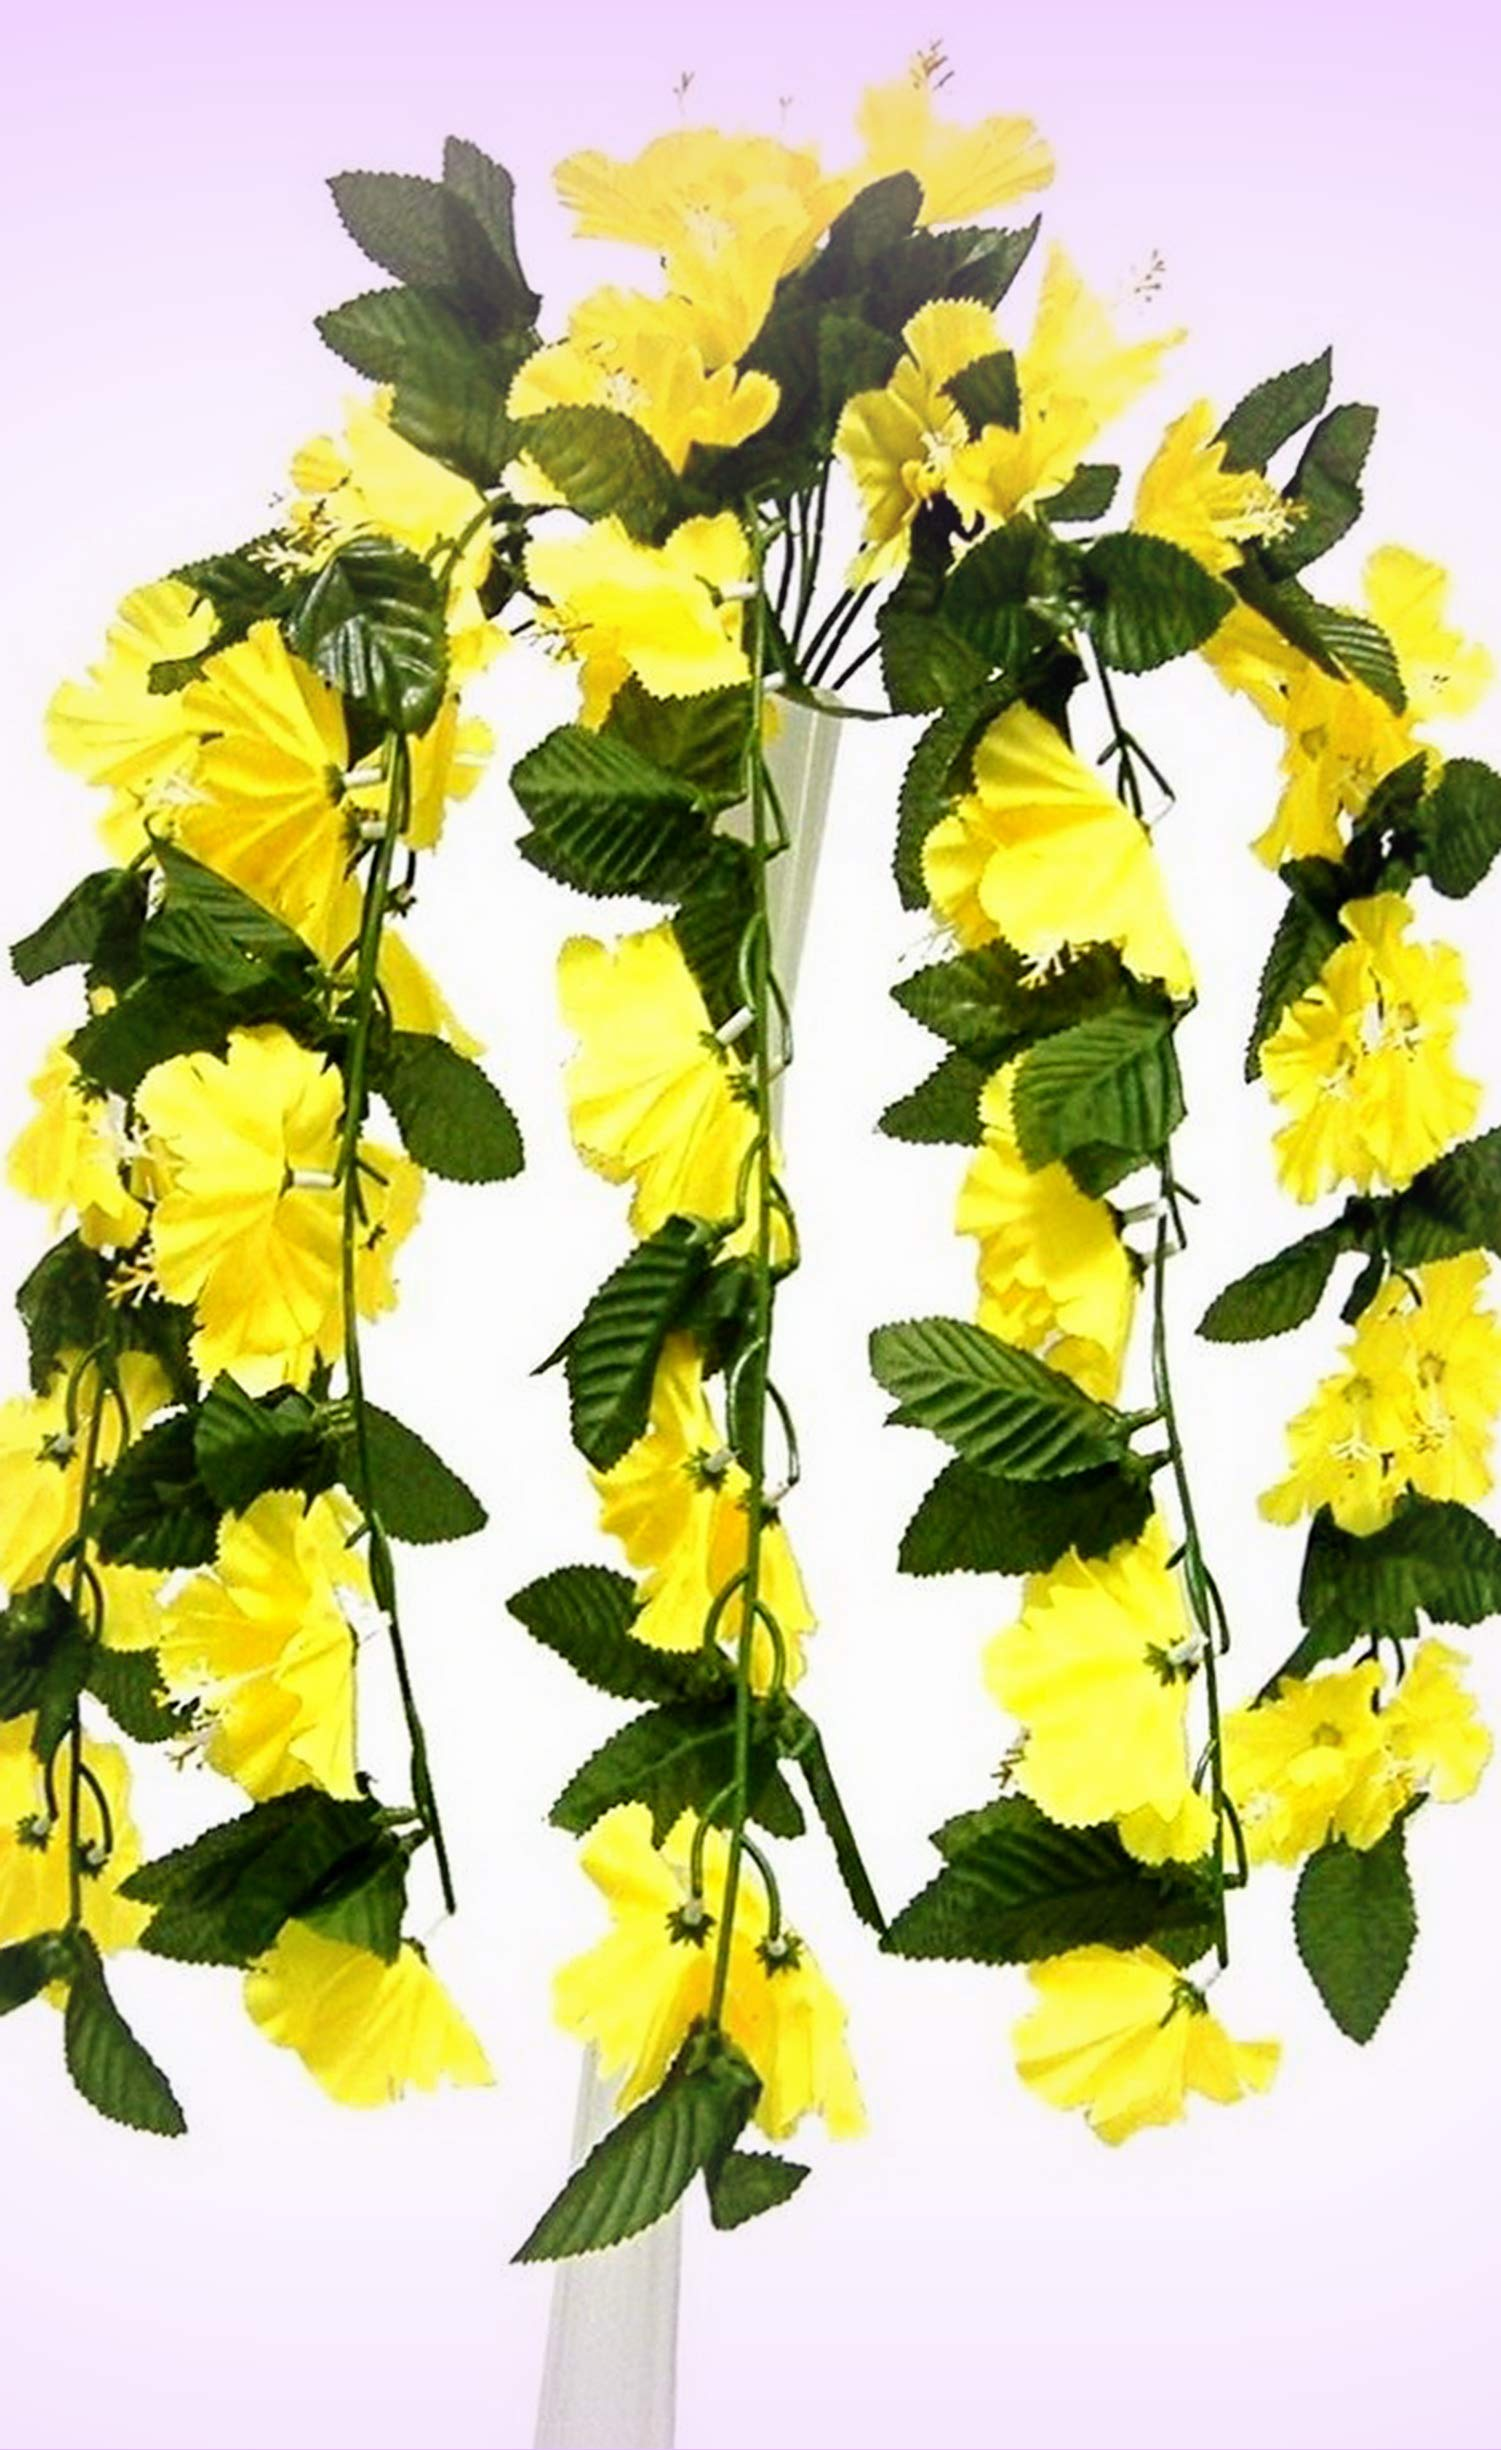 Inna-Wholesale-Art-Crafts-New-26-Hibiscus-Yellow-Hanging-Bush-Silk-Decorating-Flowers-Bouquets-Centerpieces-Perfect-for-Any-Wedding-Special-Occasion-or-Home-Office-Dcor